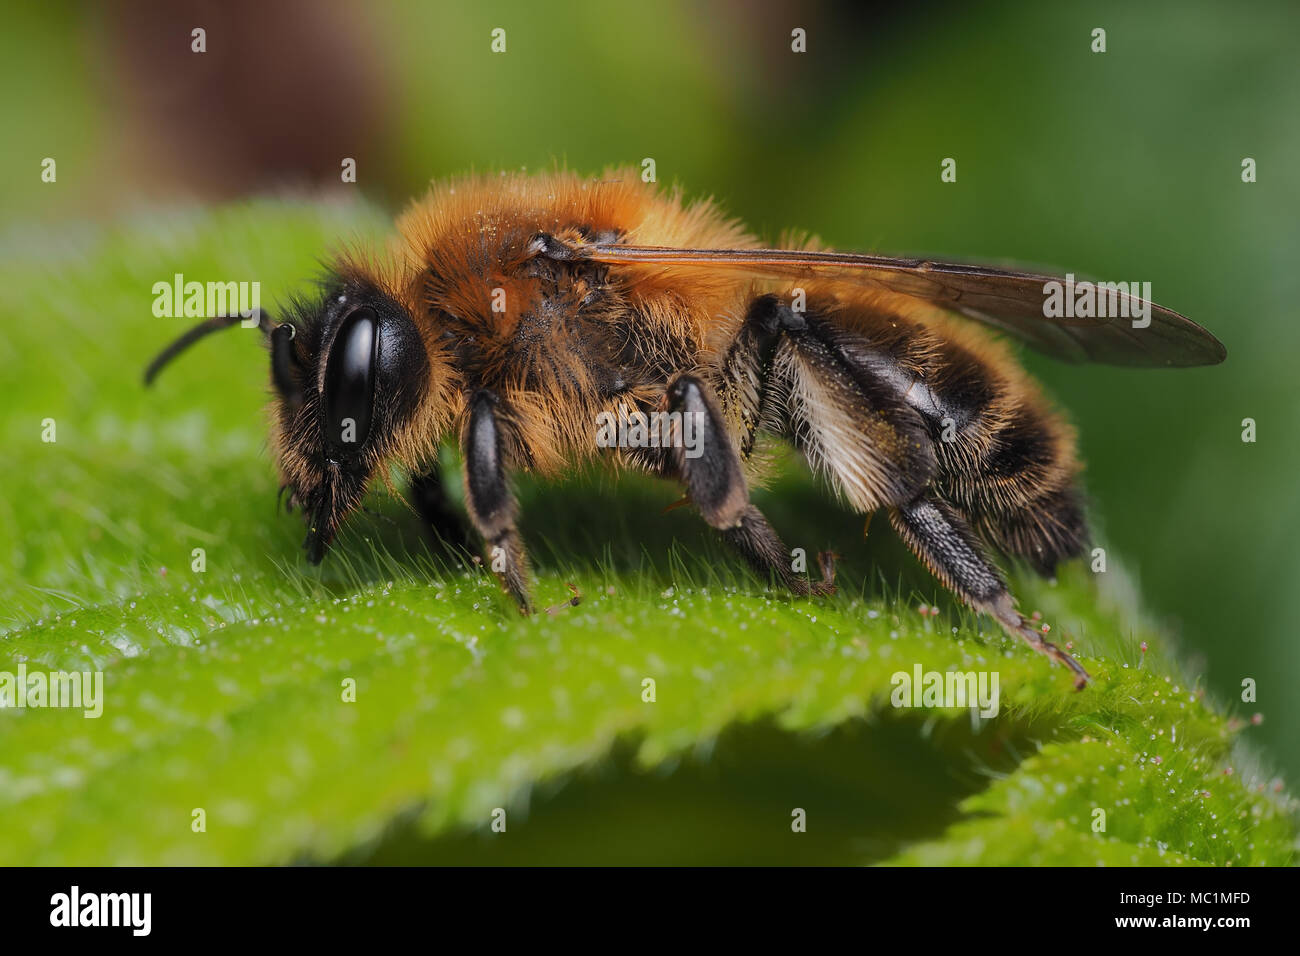 Chocolate mining bee female (Andrena scotica) perched on bramble leaf. Tipperary, Ireland - Stock Image